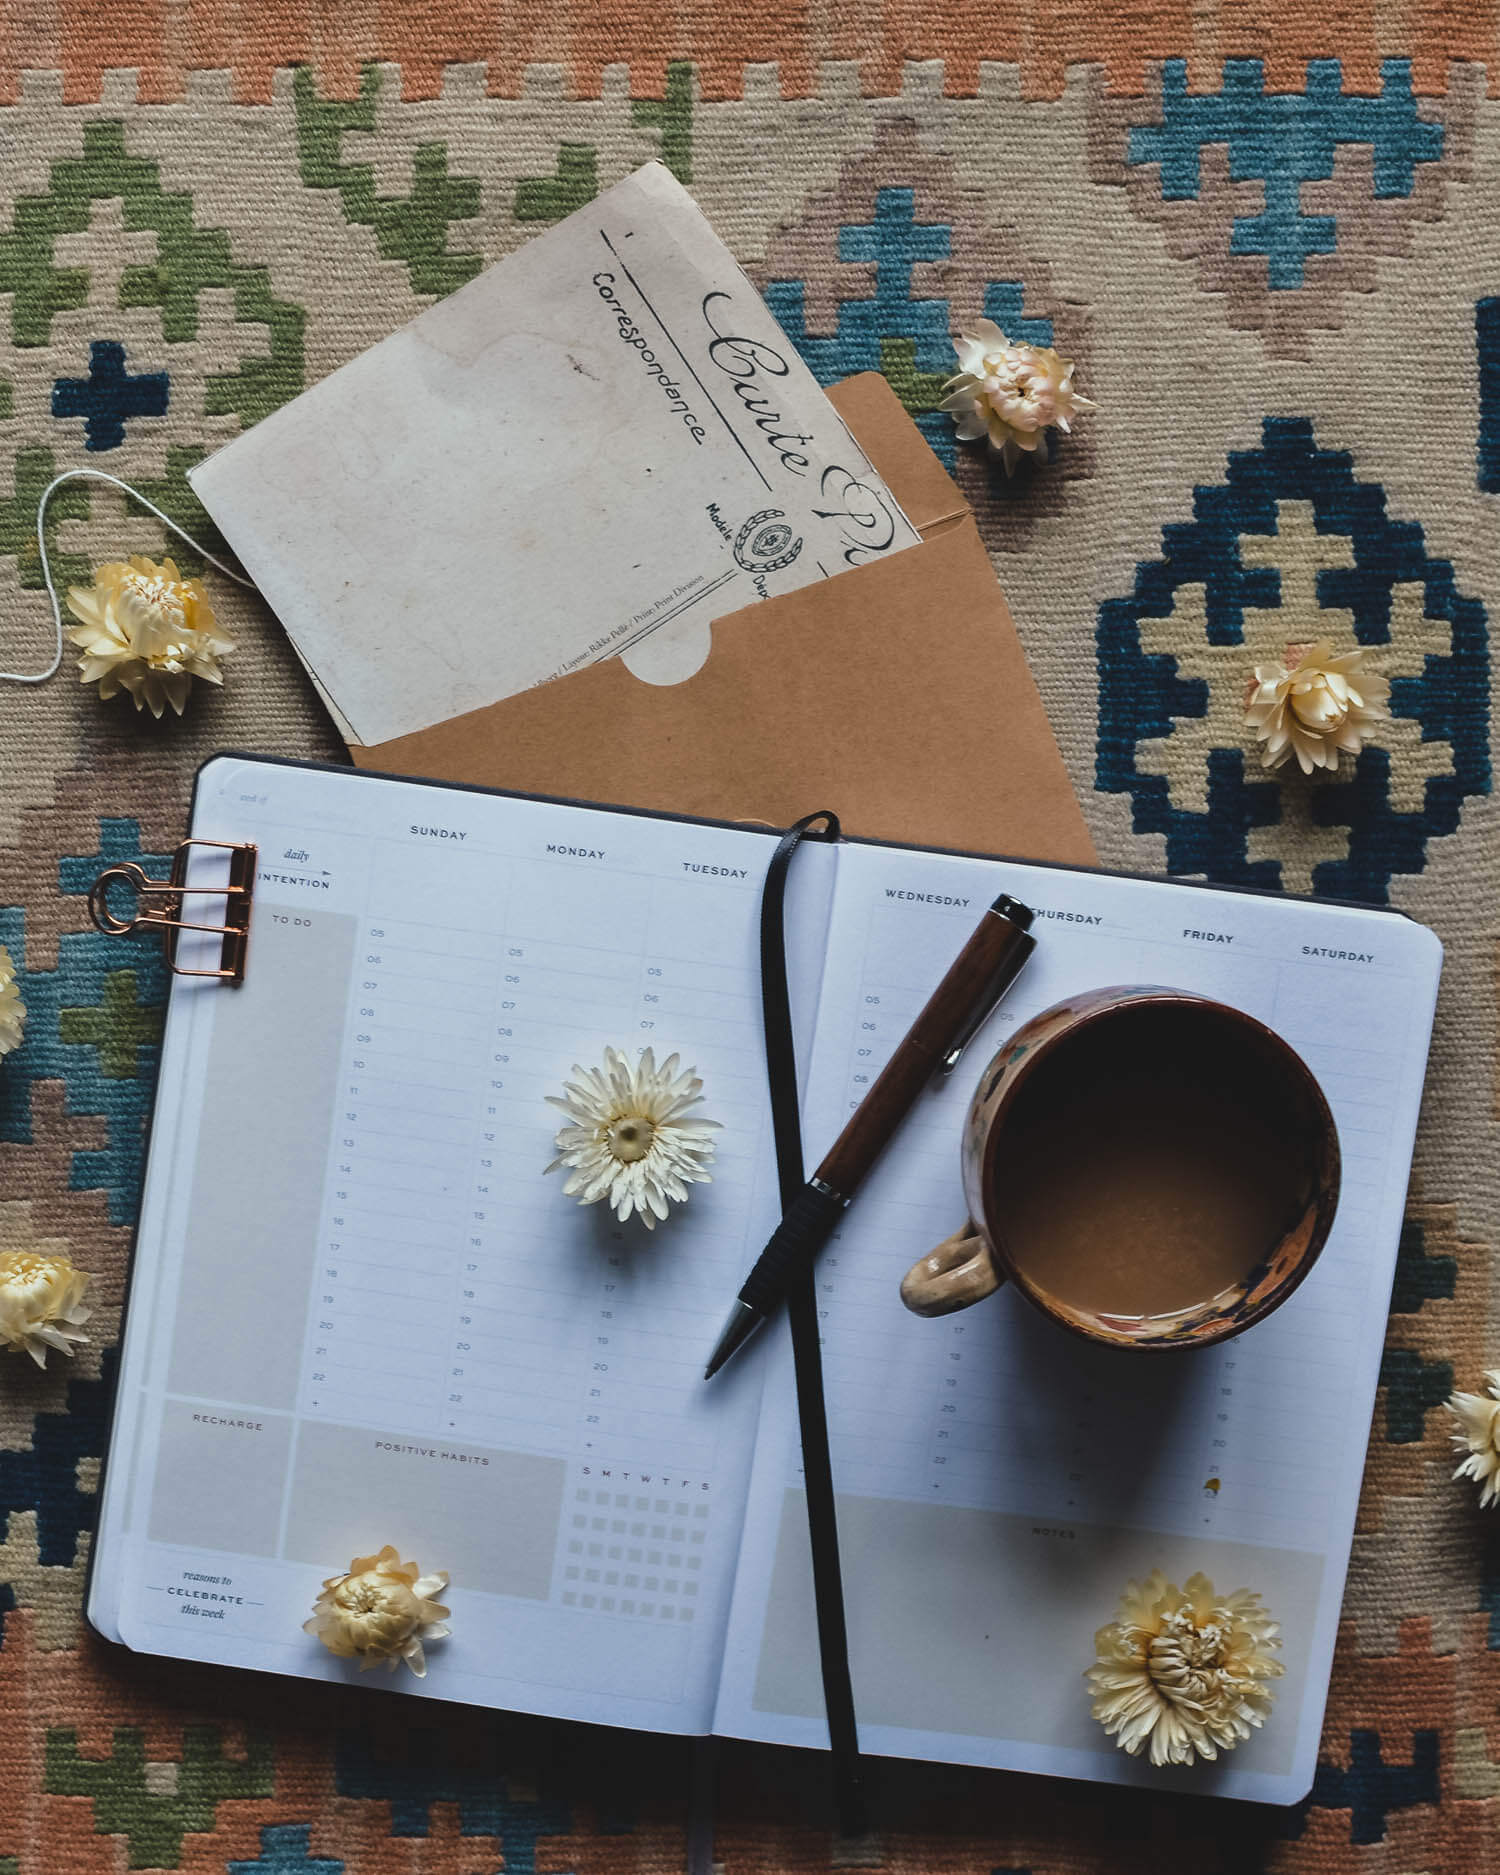 Diary on a rug with dried flowers and vintage postcard